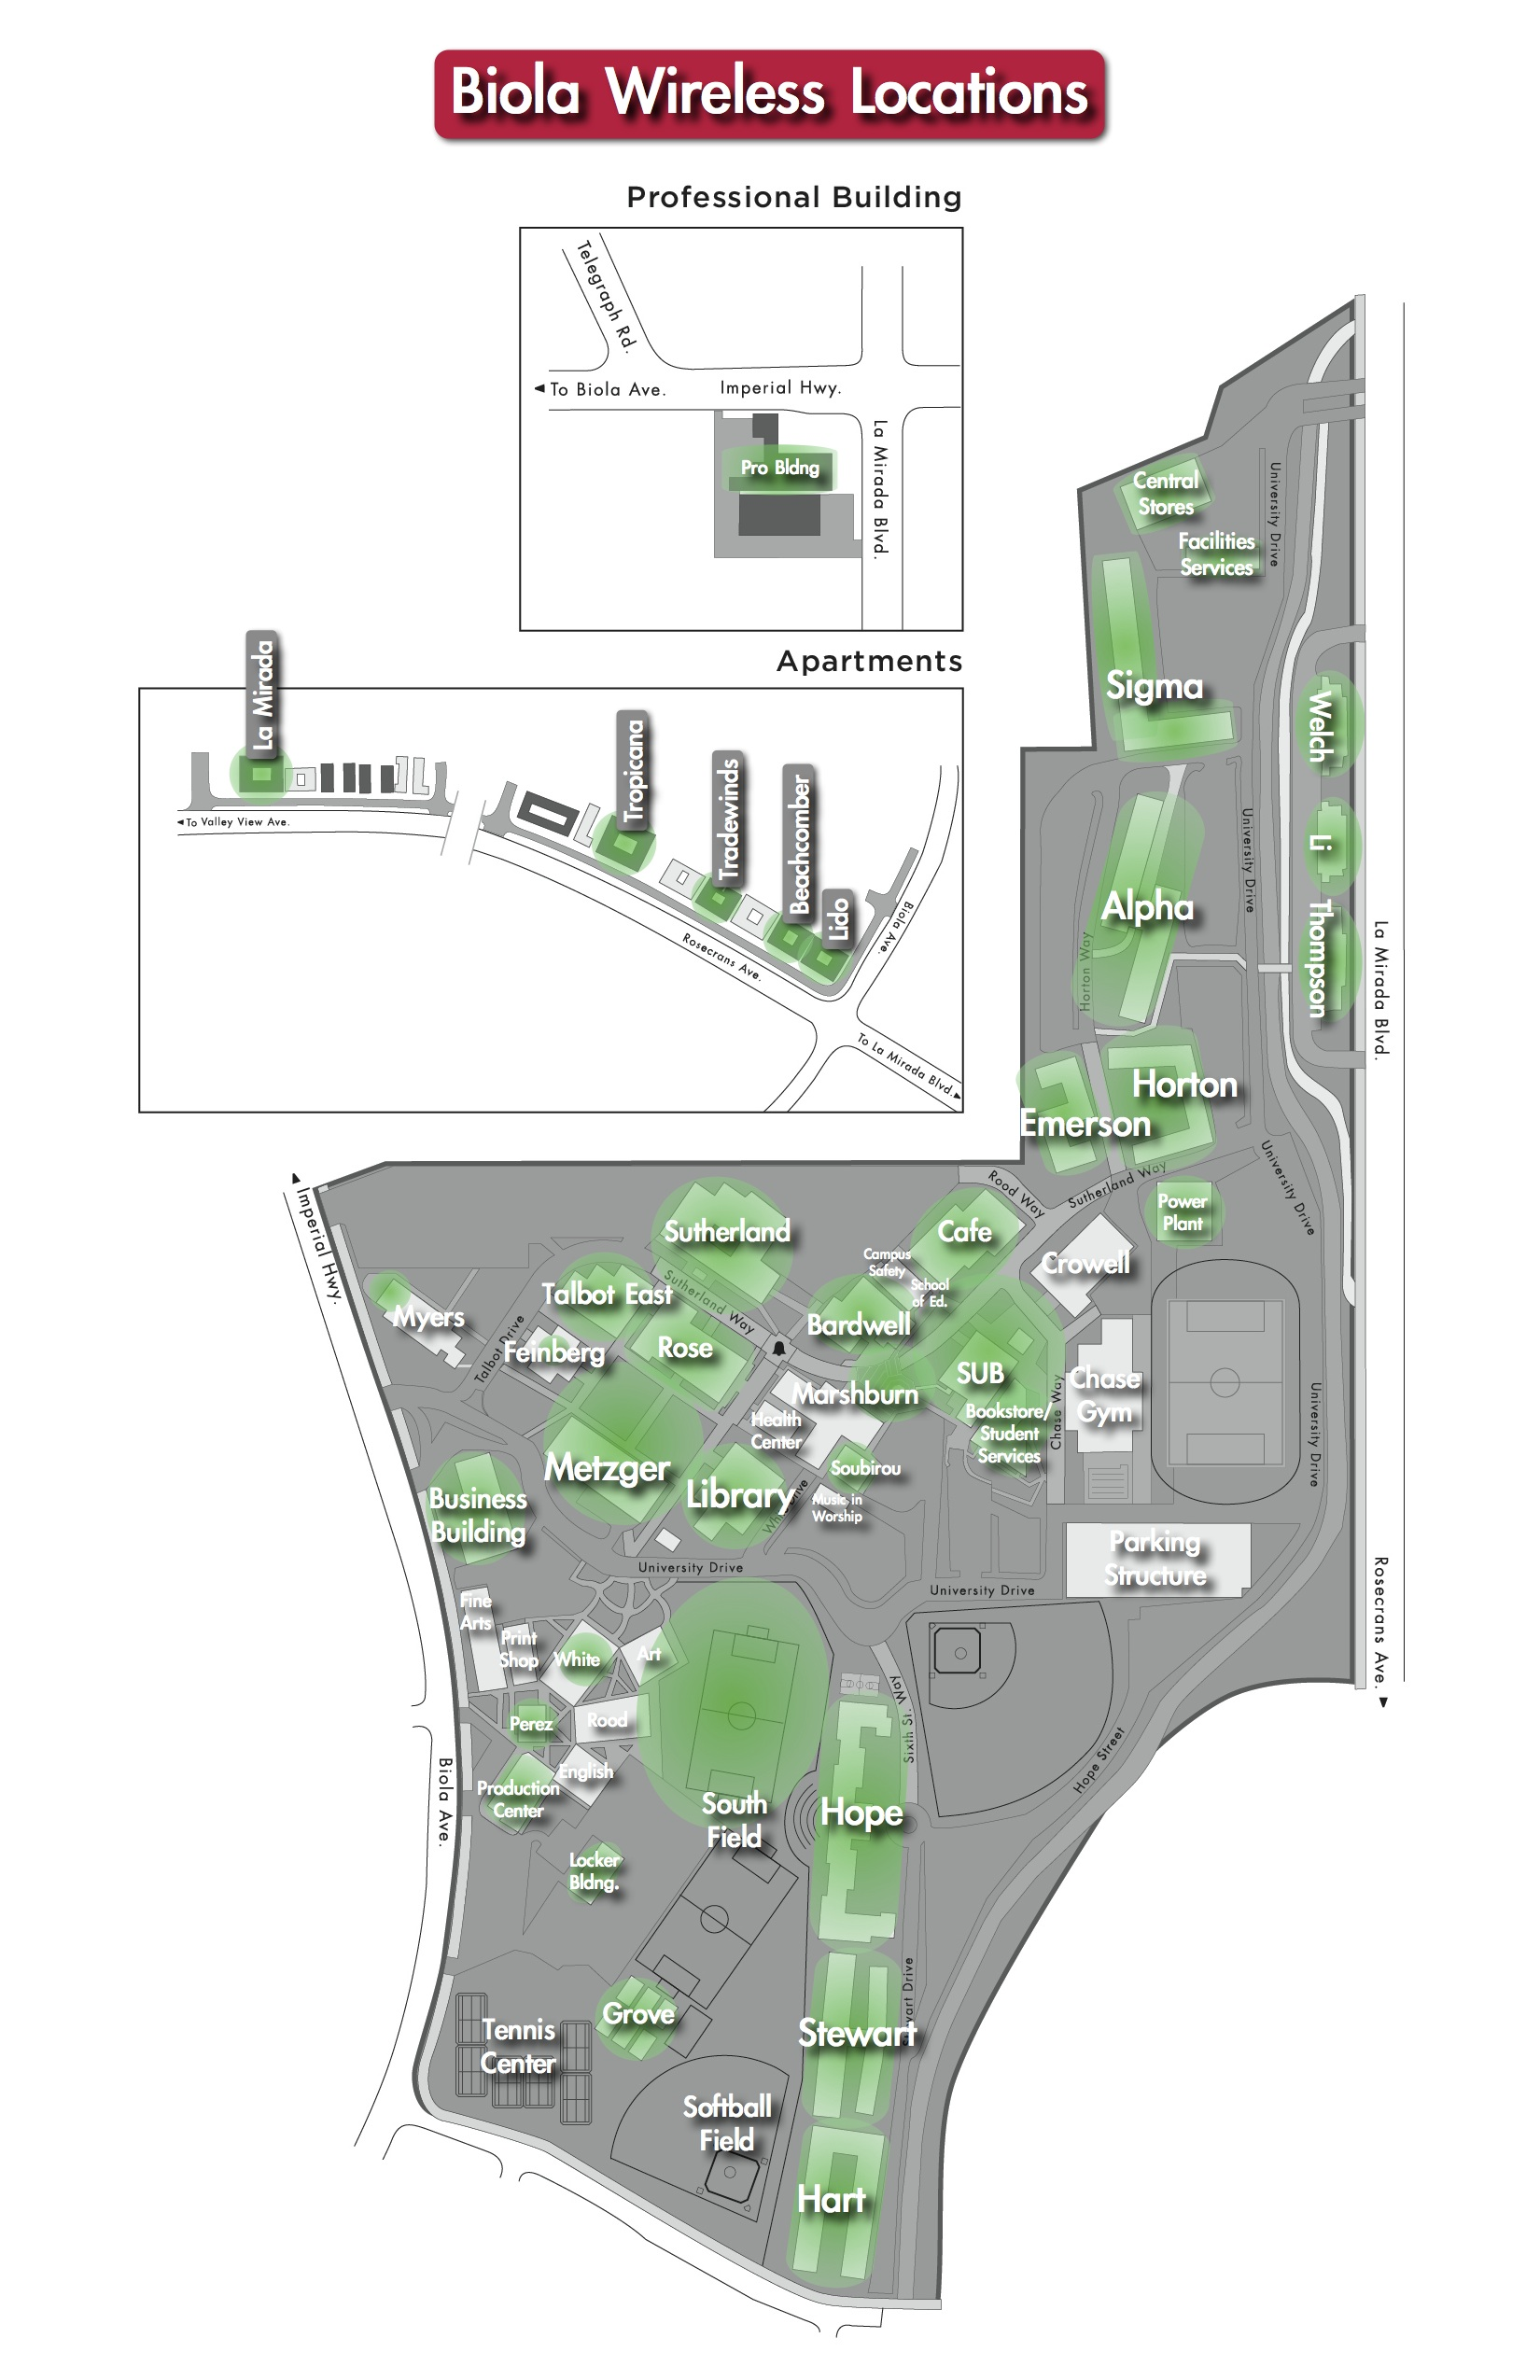 Biola campus map of wireless locations